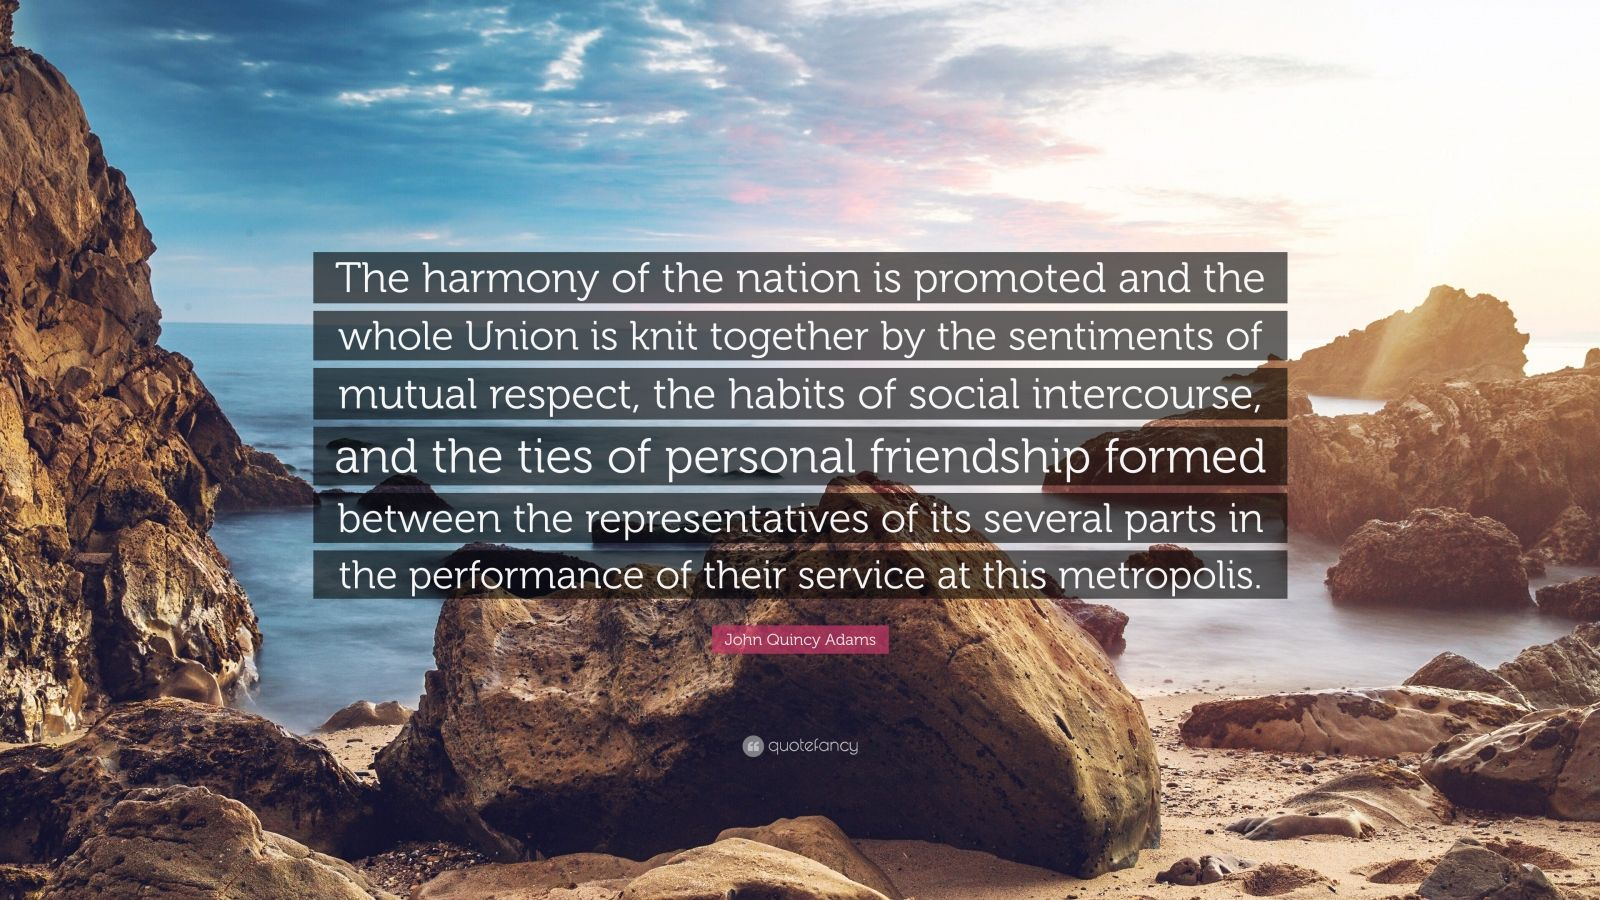 """John Quincy Adams Quote: """"The harmony of the nation is promoted and the whole Union is knit together by the sentiments of mutual respect, the habits of social intercourse, and the ties of personal friendship formed between the representatives of its several parts in the performance of their service at this metropolis."""""""